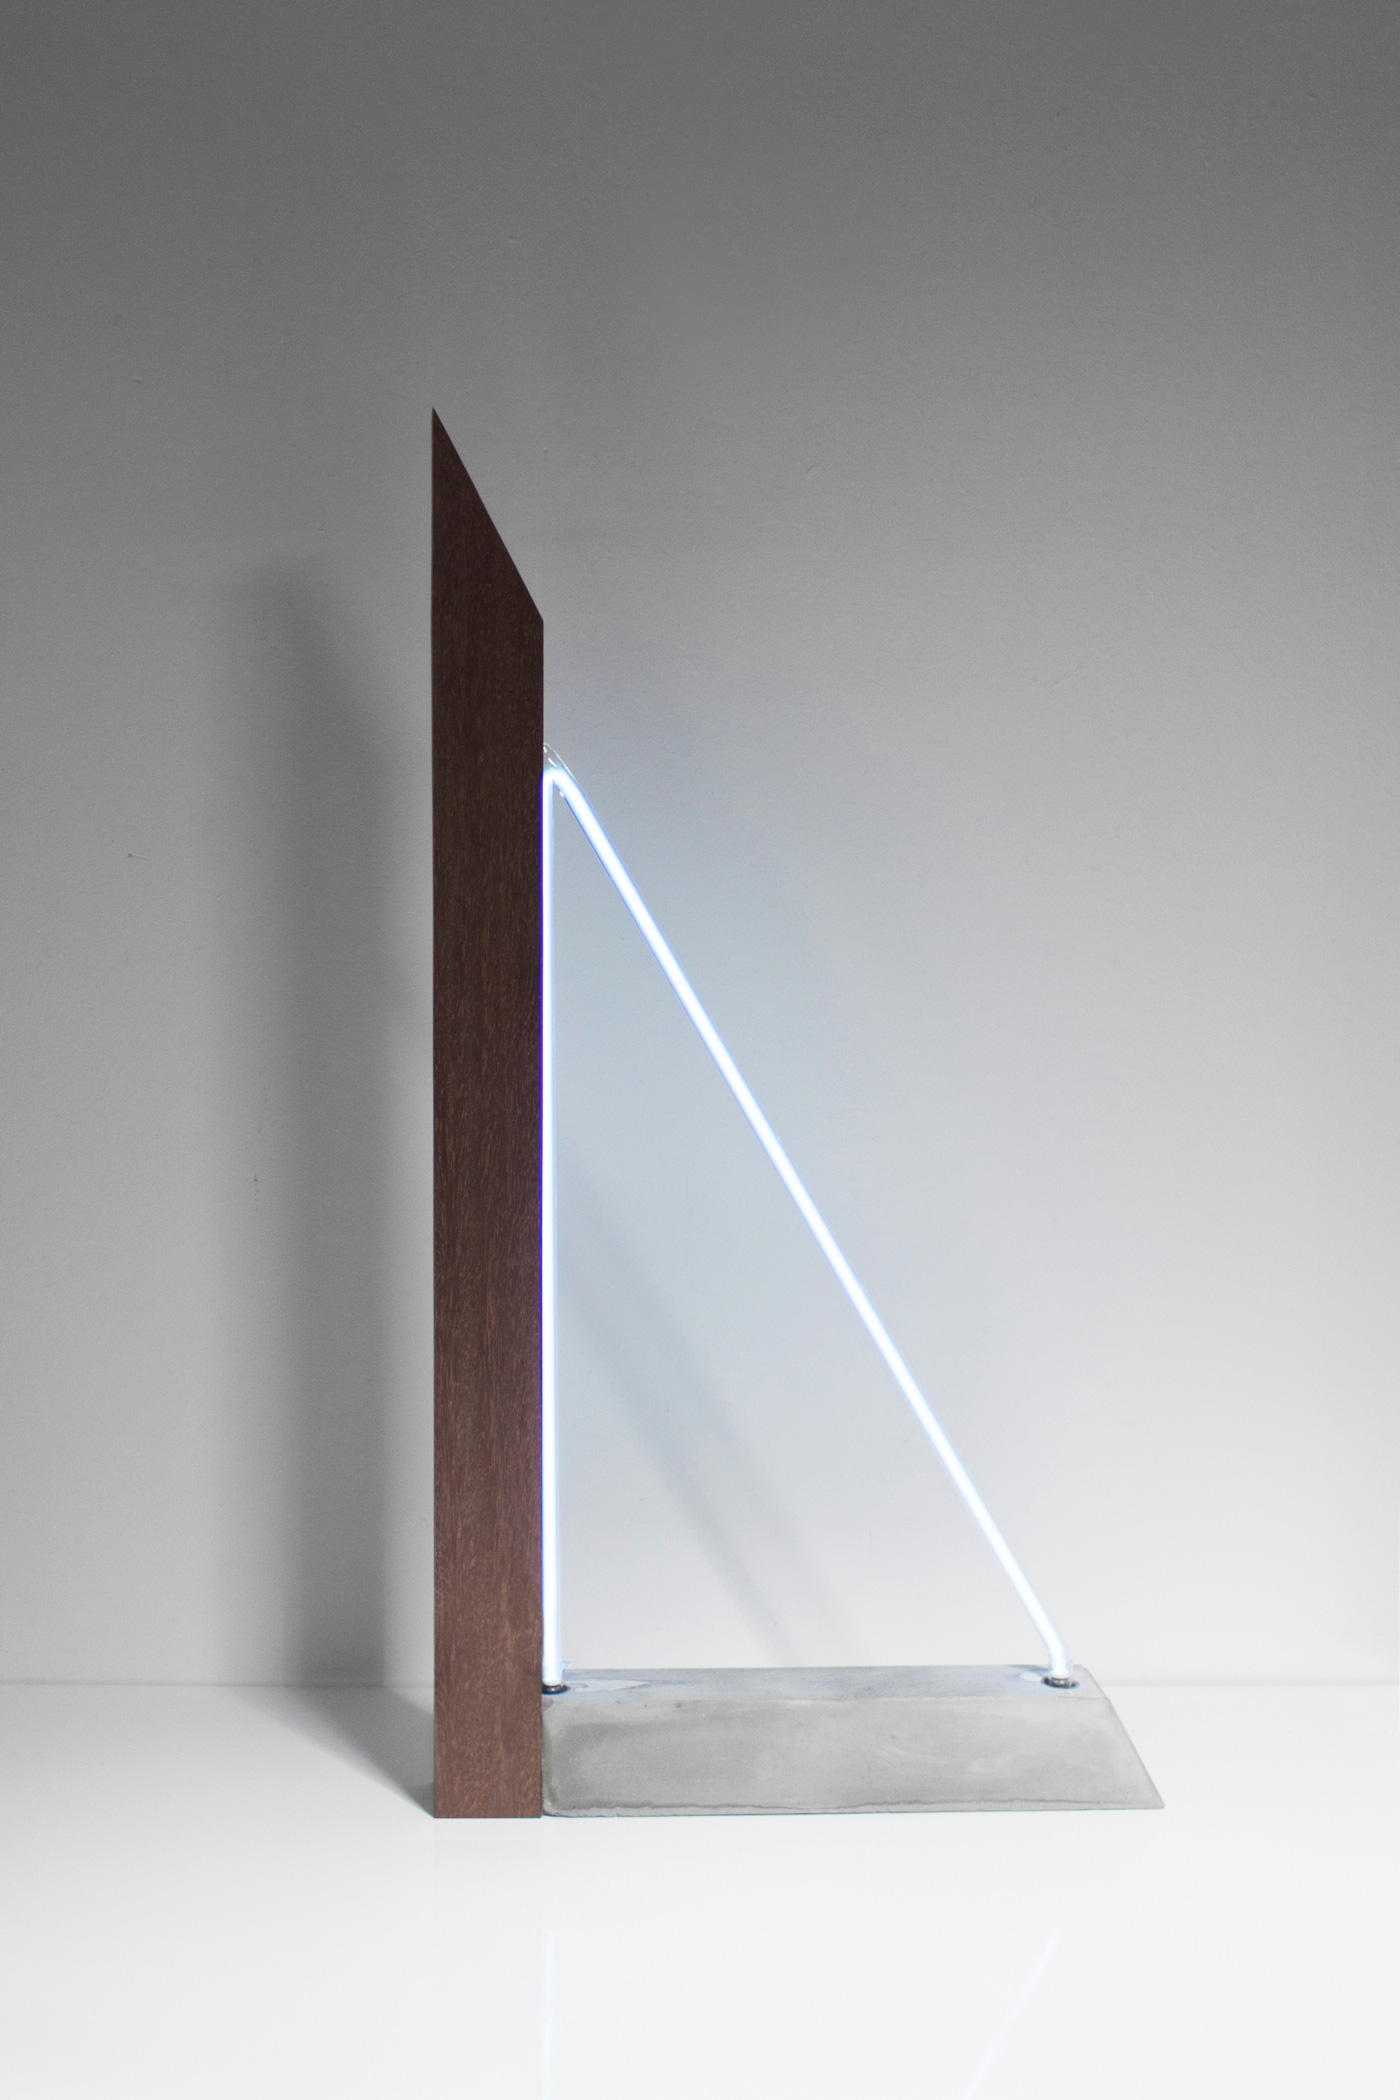 Carla Cascales' Sculpture Project, Ice | Yellowtrace